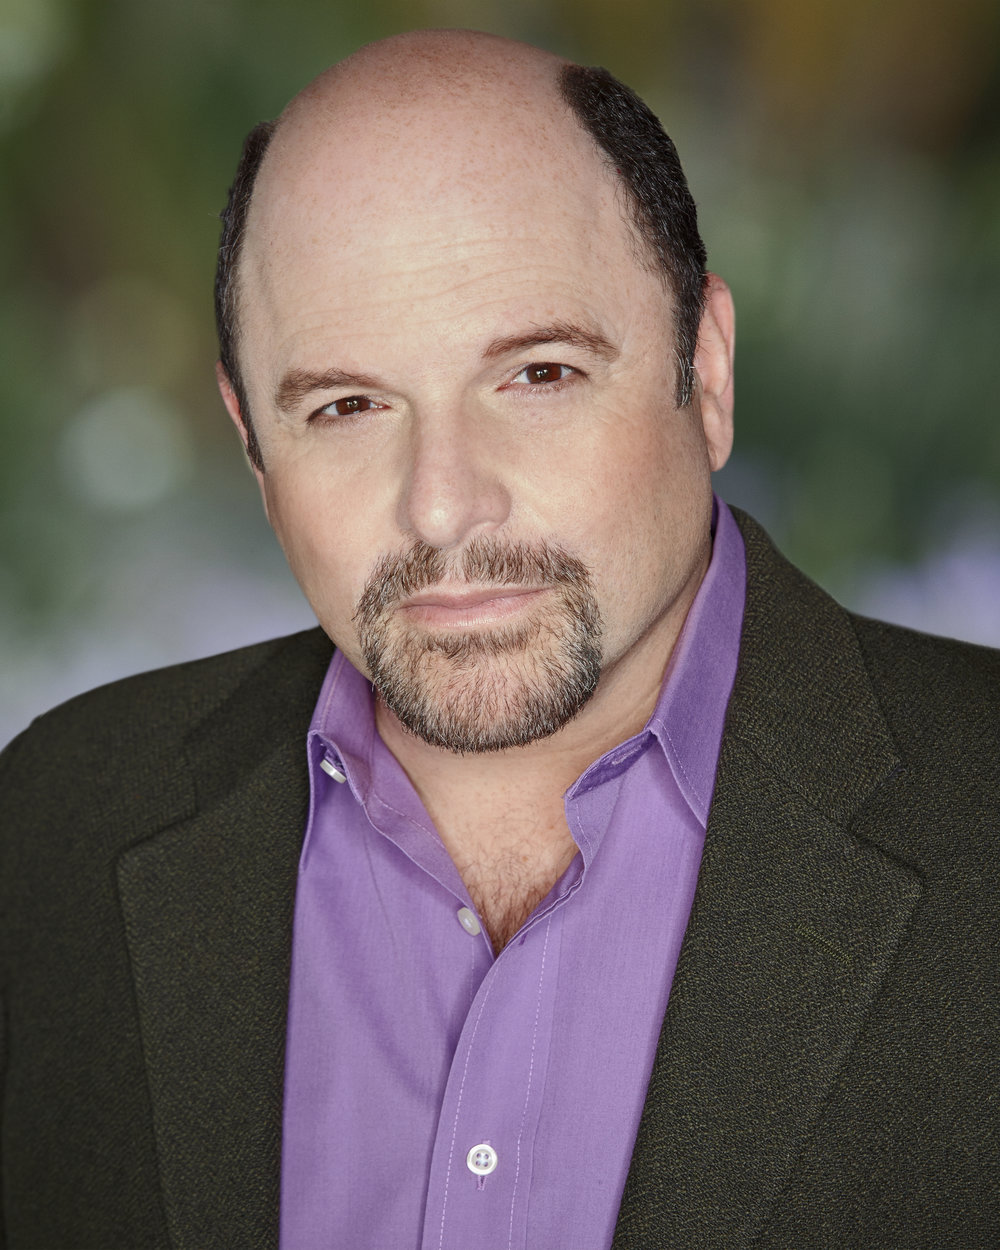 JasonAlexander_Headshot 1 - High res 2015.jpg